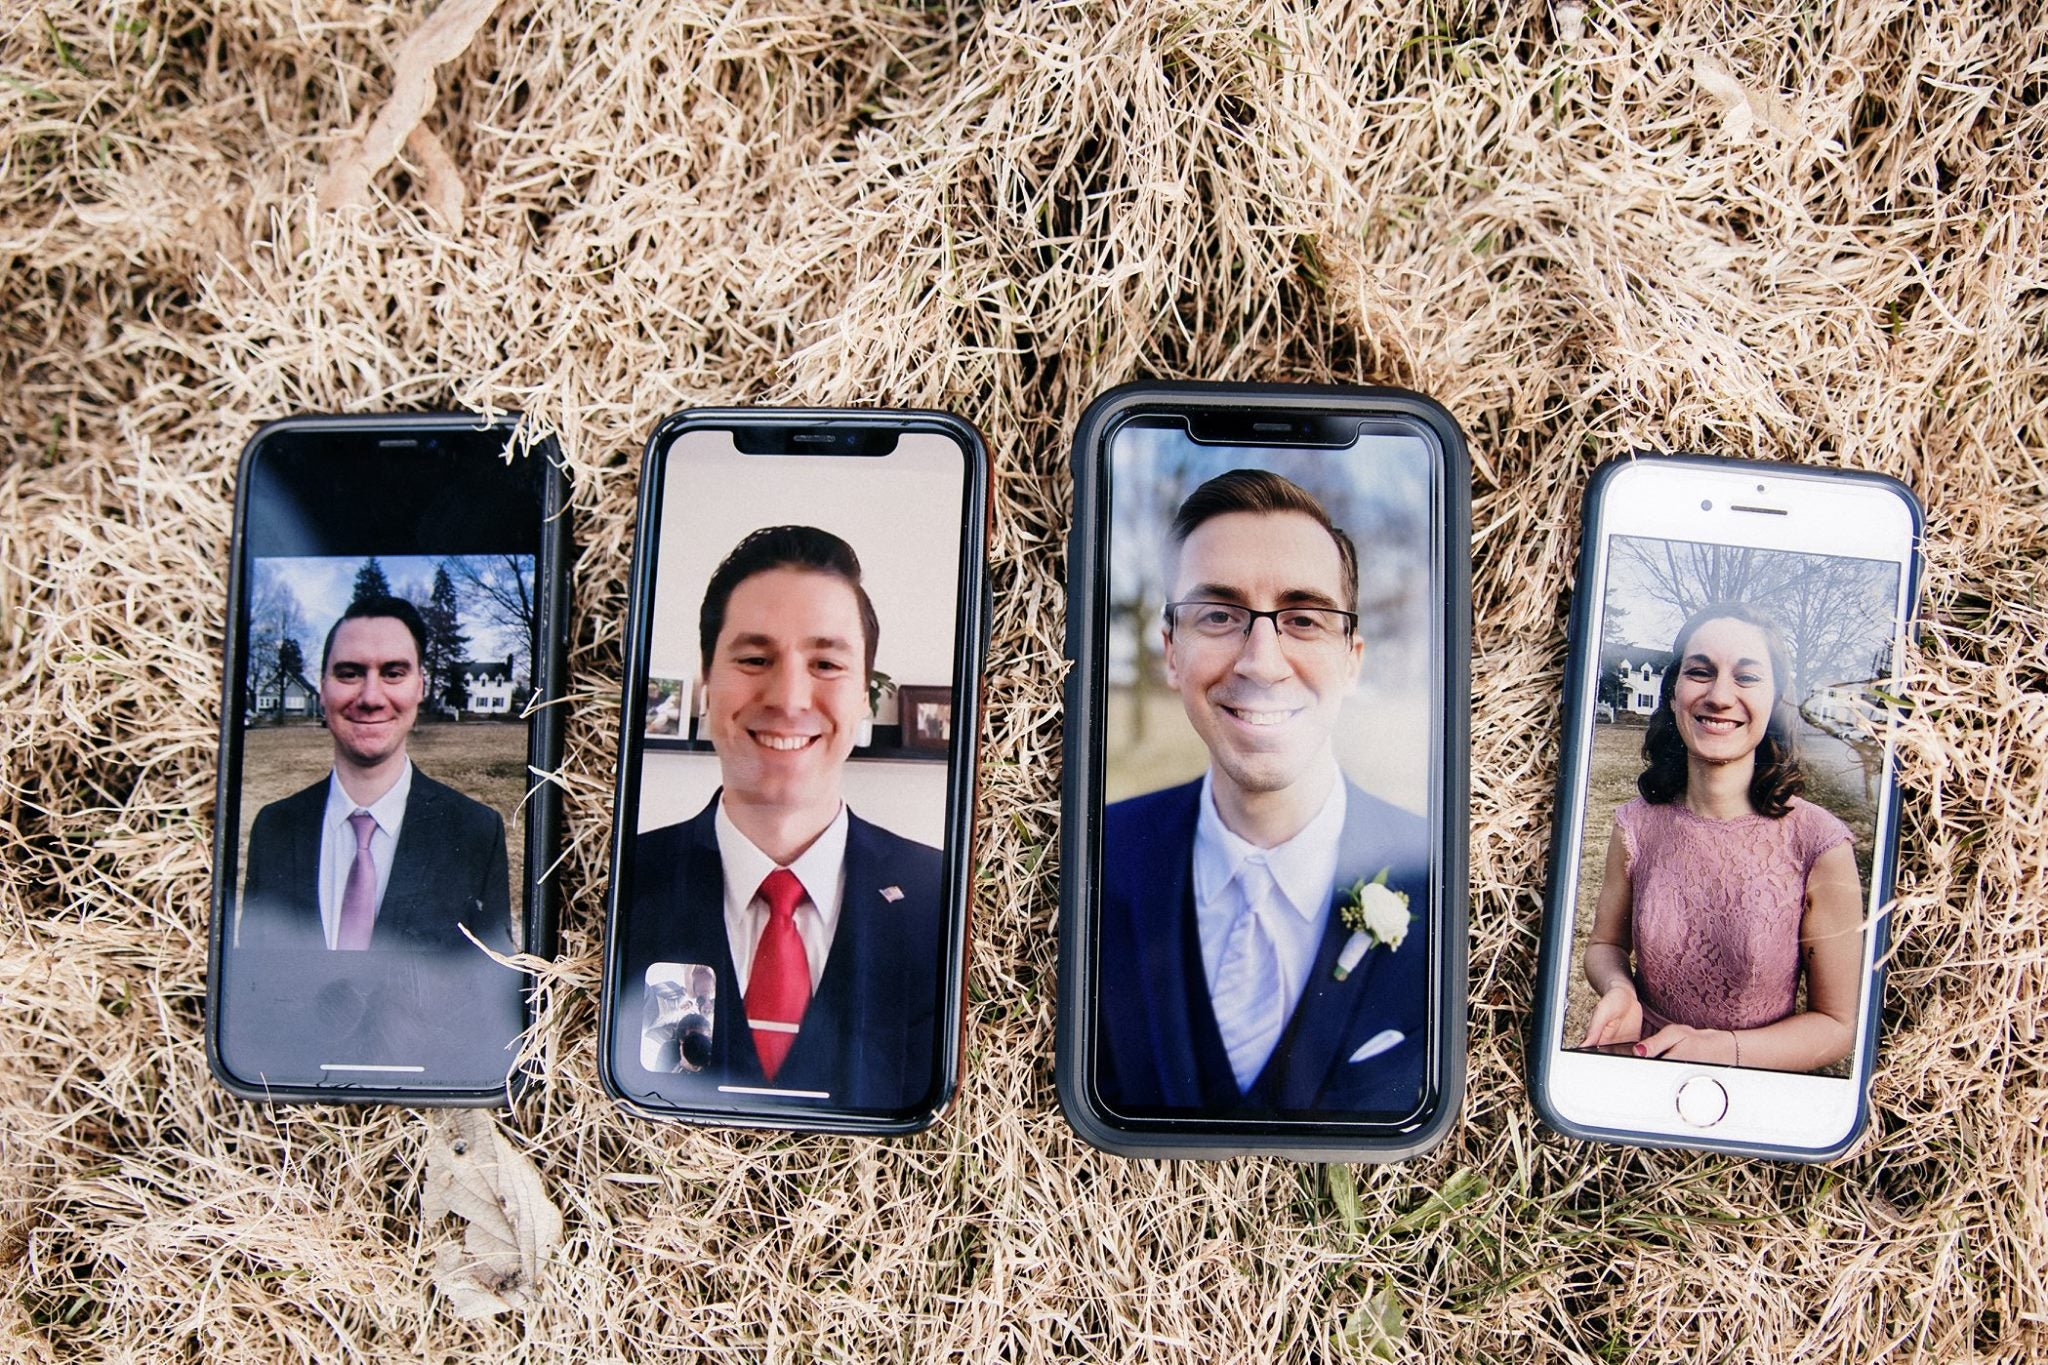 Four smart phones placed on top of a hay covered platform showcasing people video calling